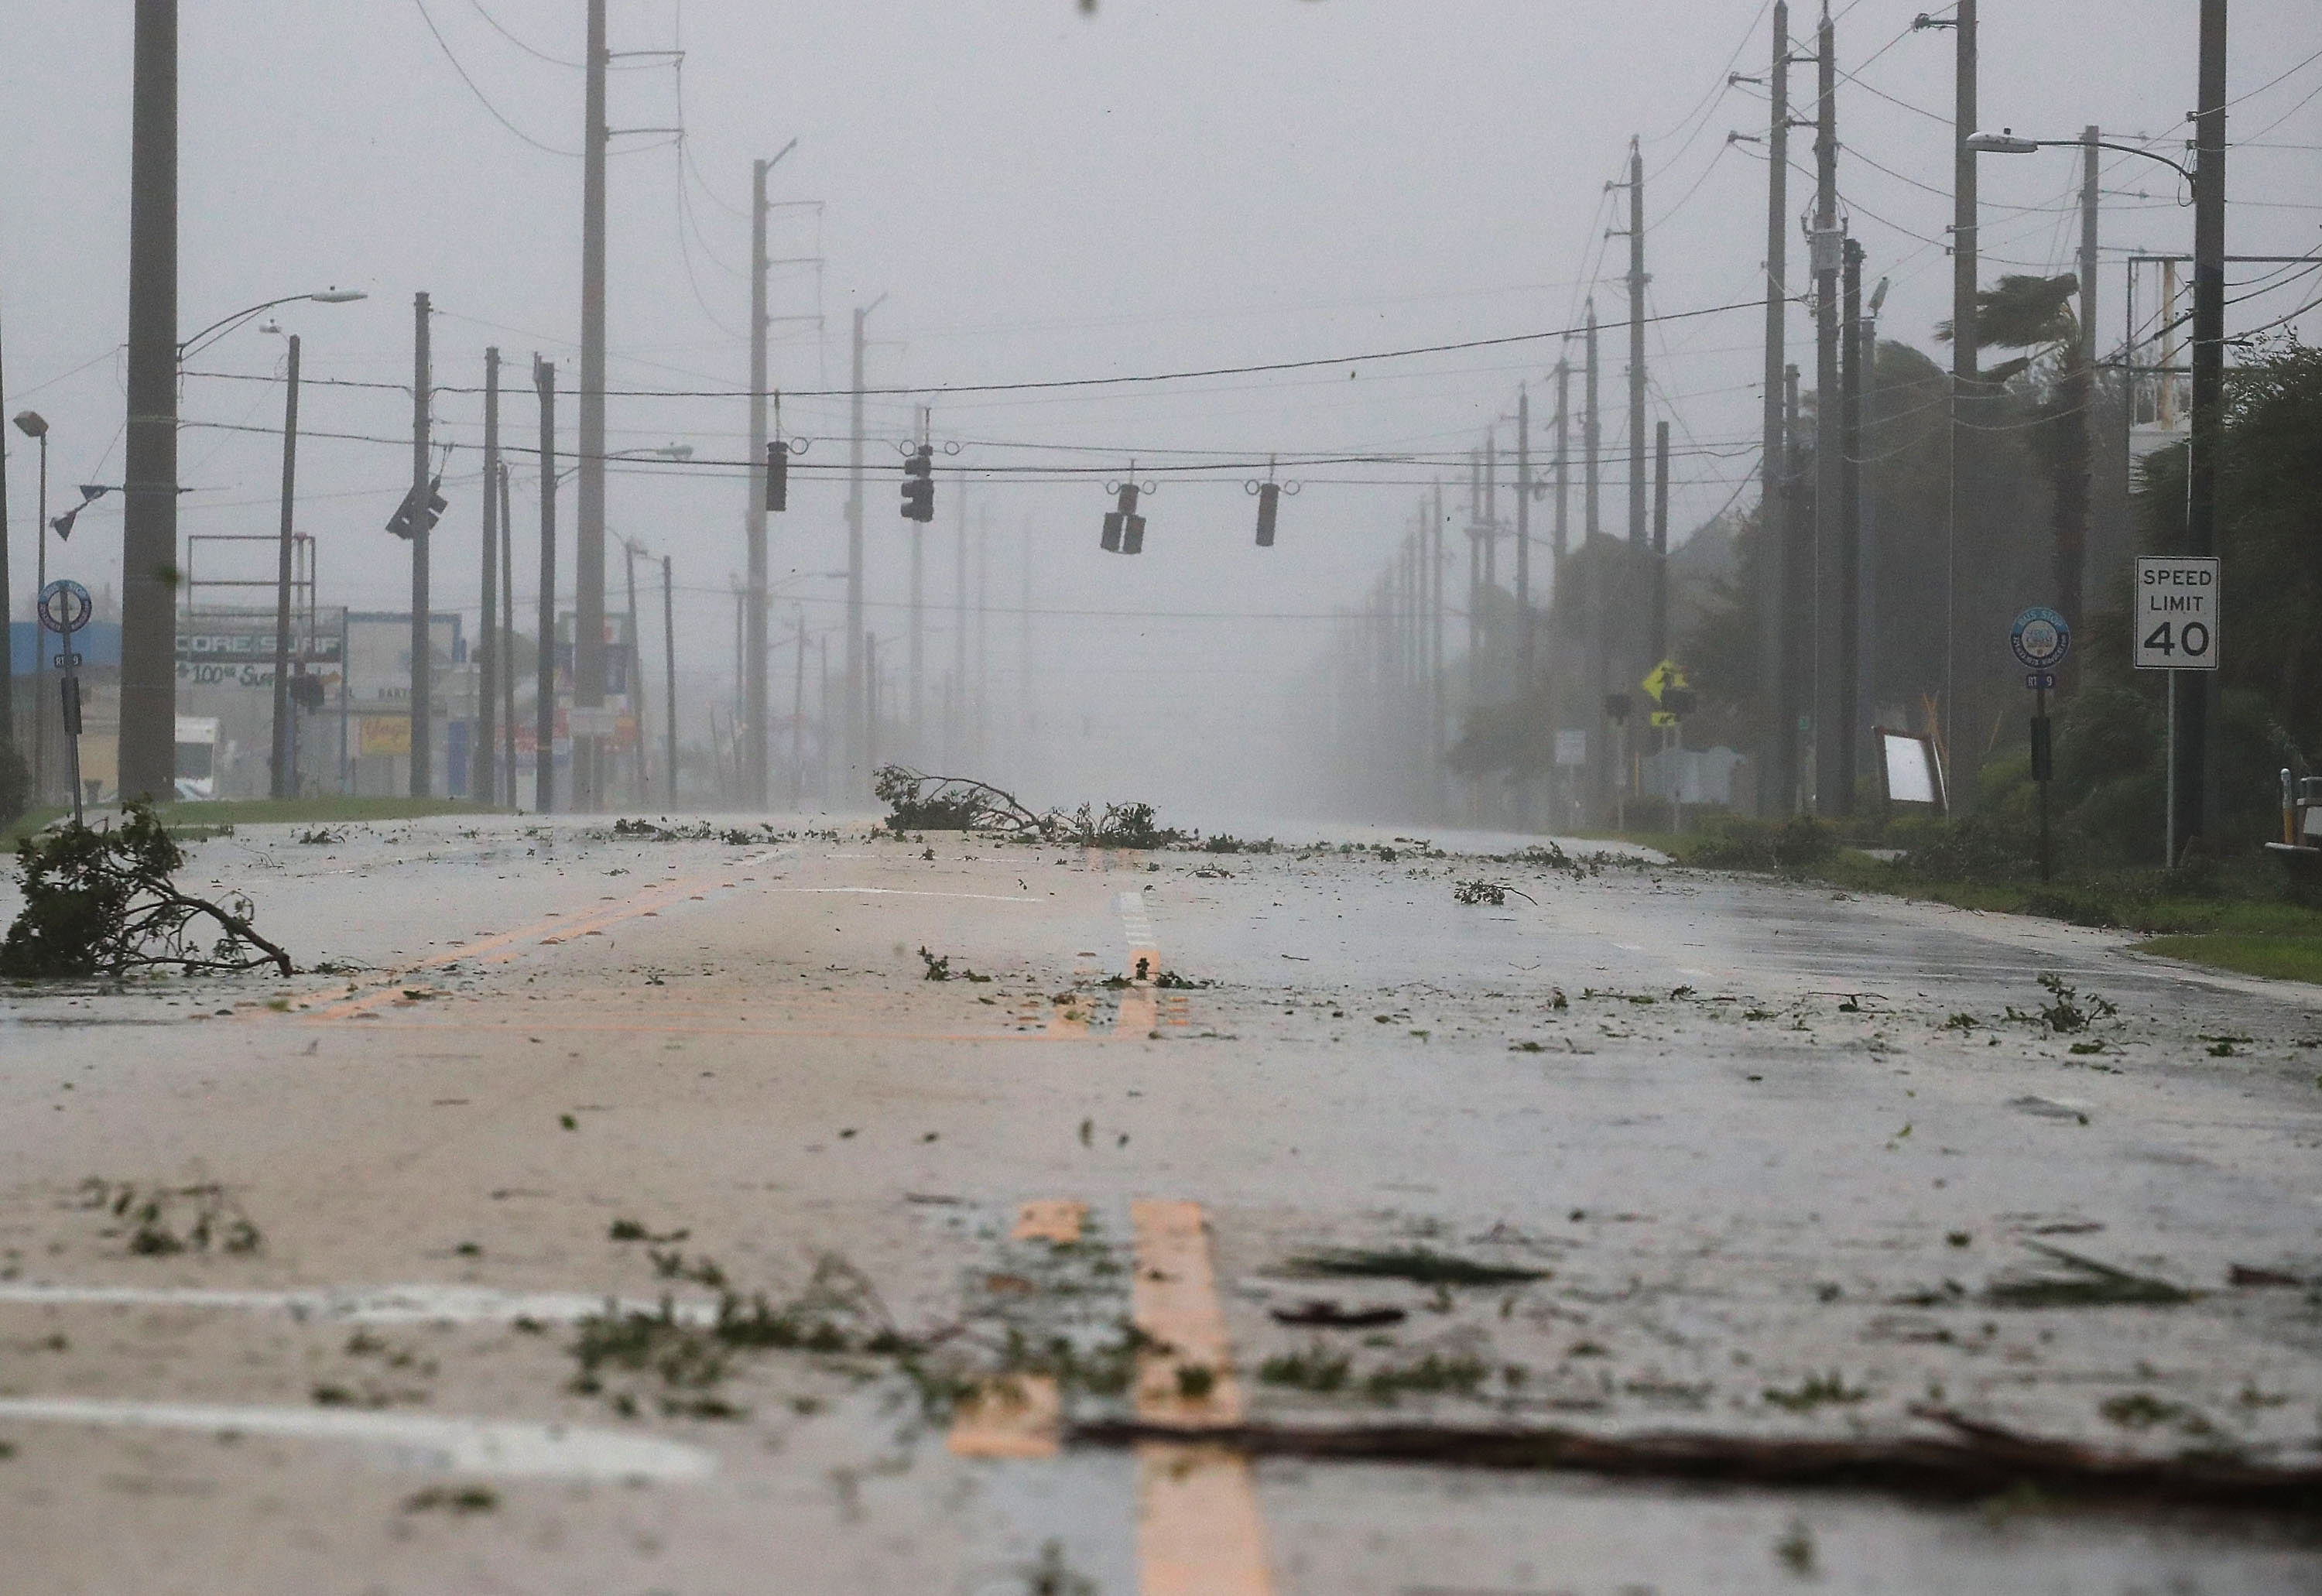 COCOA BEACH, FL - OCTOBER 07: Lights are out on highway A1A from the winds of Hurricane Matthew, October 7, 2016 on Cocoa Beach, Florida. Hurricane Matthew passed by offshore as a catagory 3 hurricane bringing heavy winds and minor flooding.  (Photo by Mark Wilson/Getty Images)